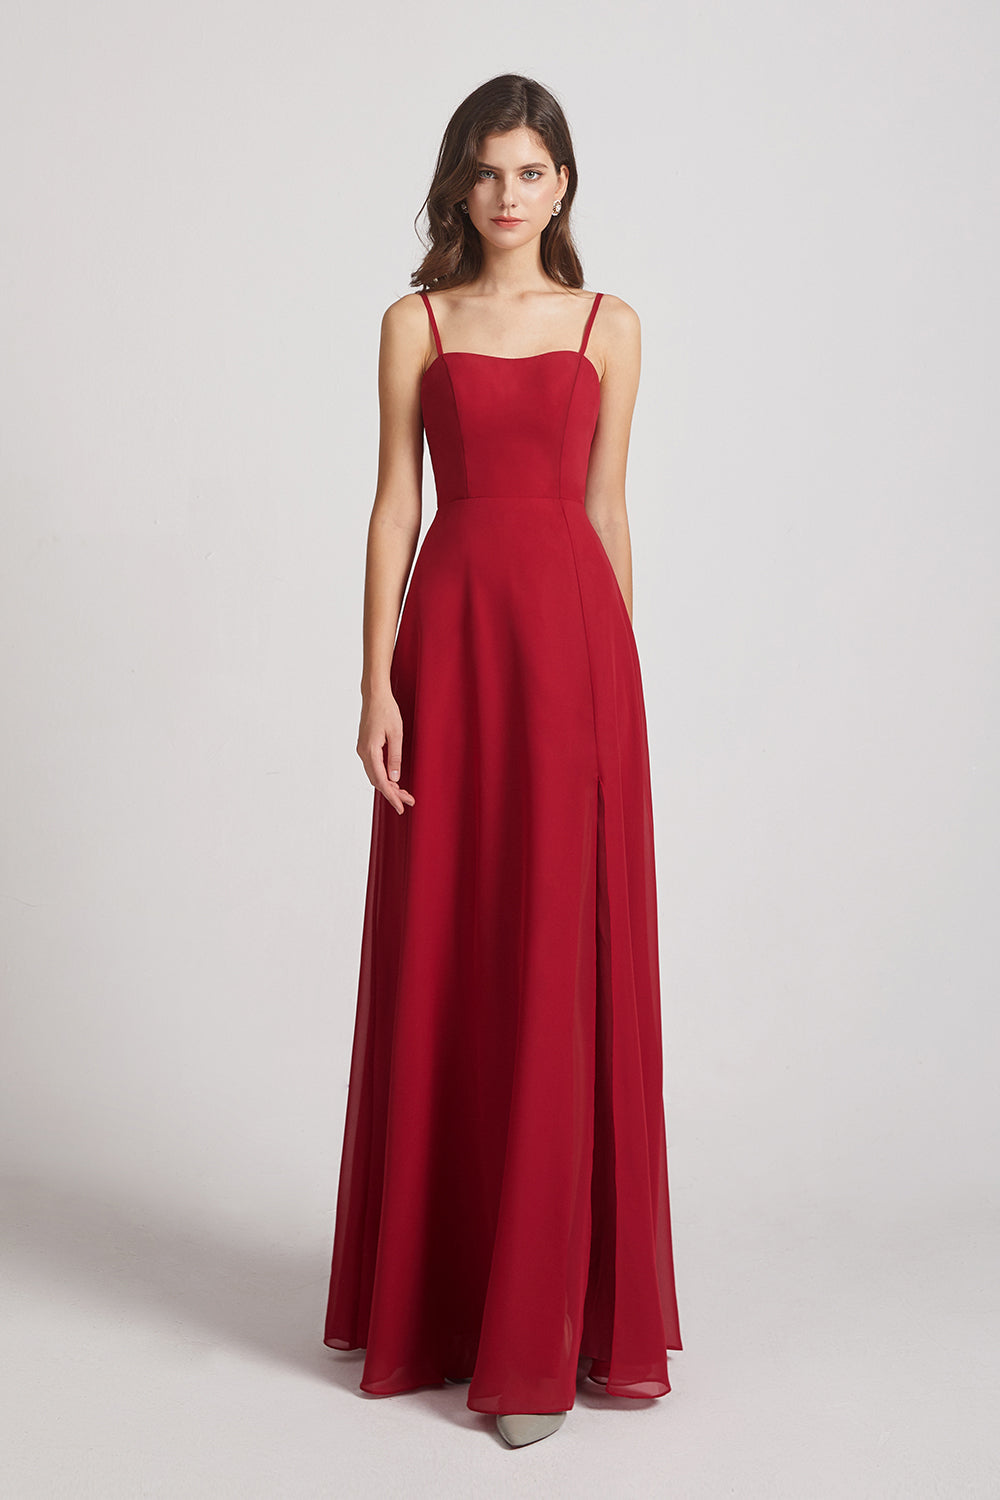 burgungy maids of honor dresses